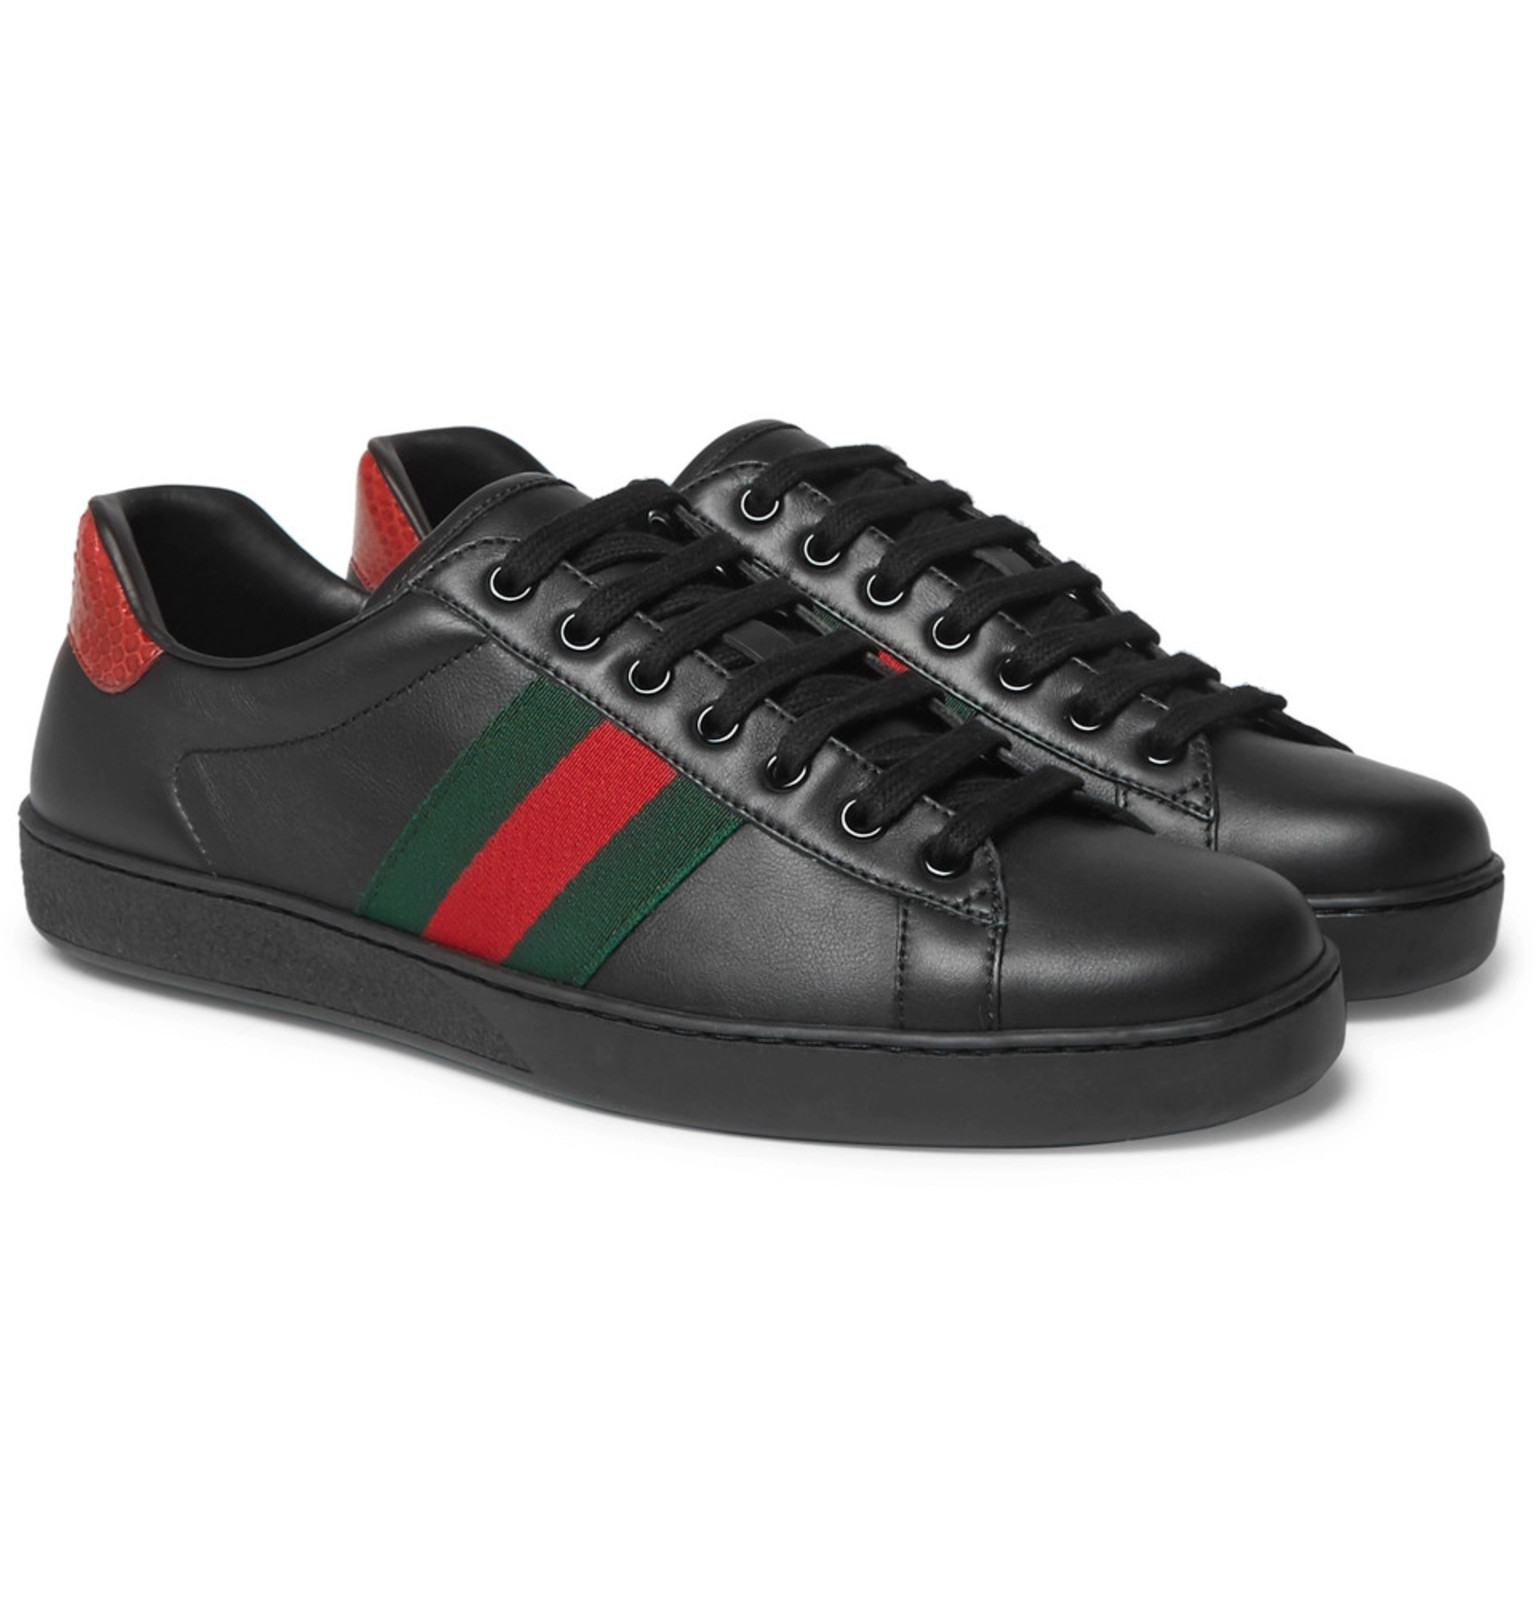 8b105b53 Gucci - Ace Snake-Trimmed Leather Sneakers